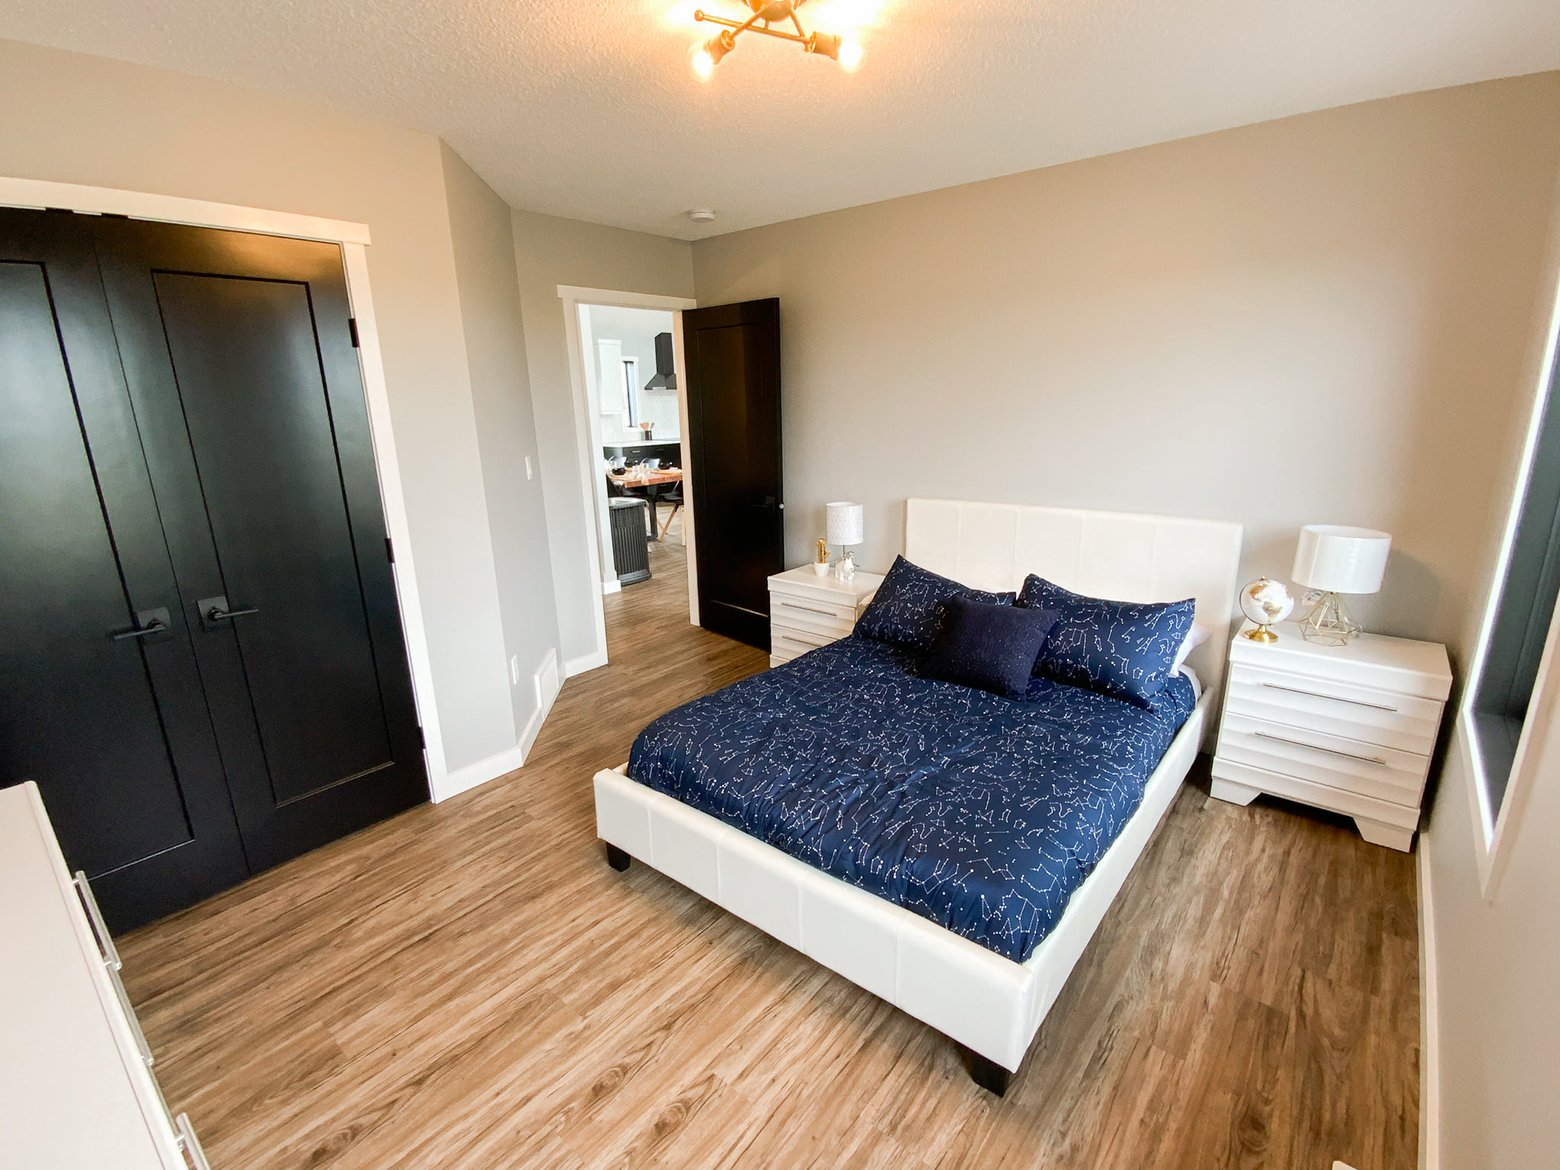 bedroom in a ready to move modular home in alberta.jpg